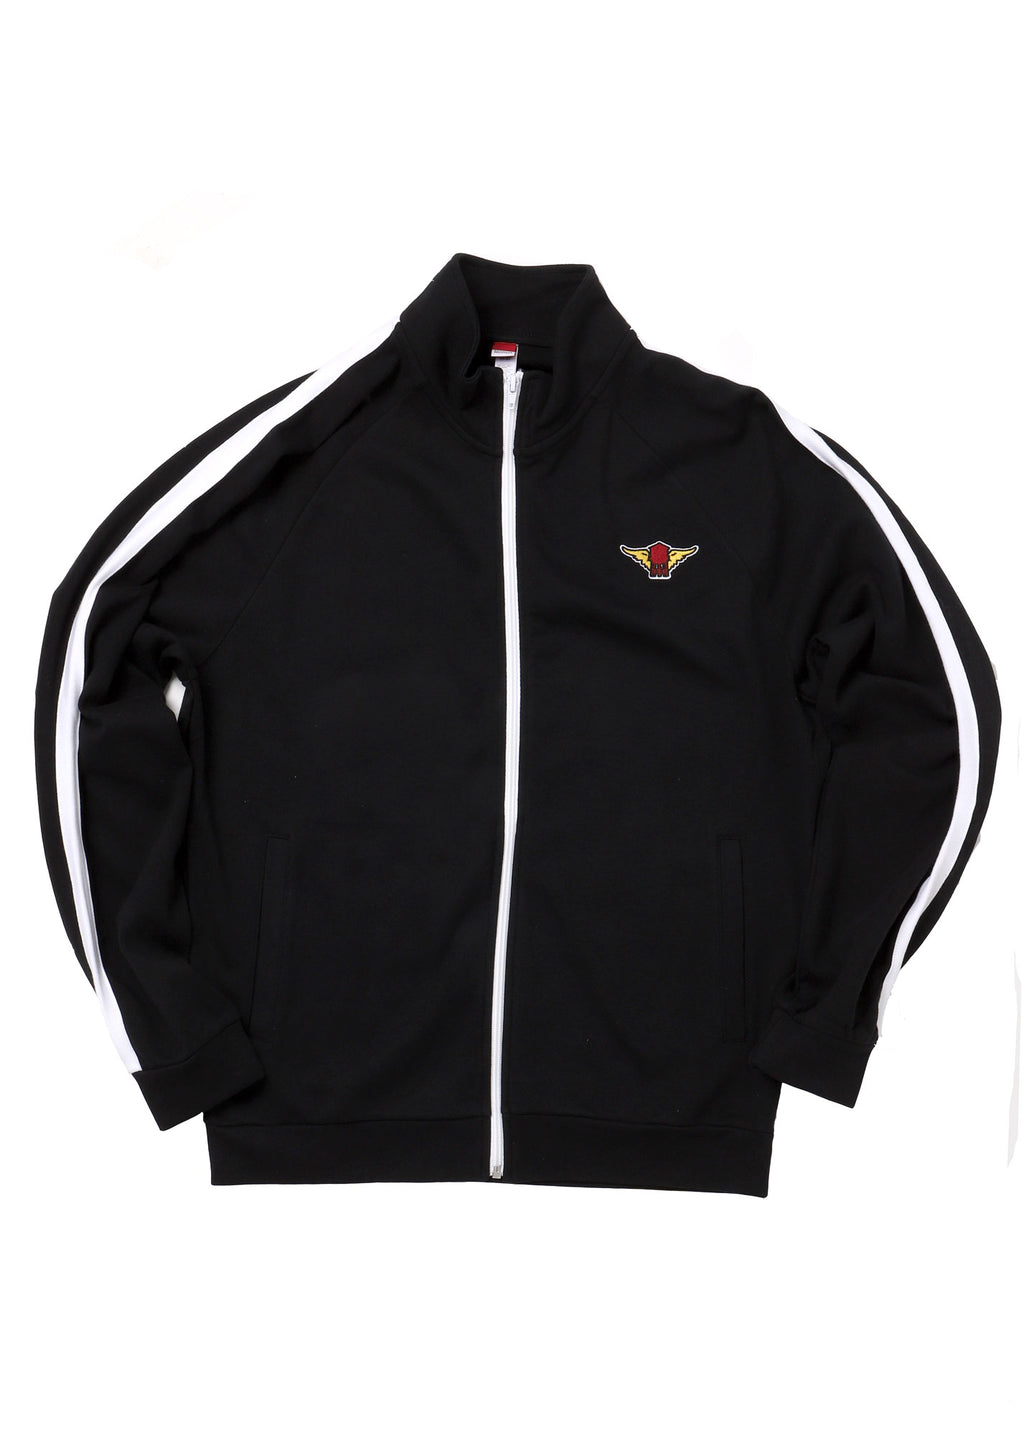 black track jacket flat lay with with winged water tower patch on left chest  arms to the side